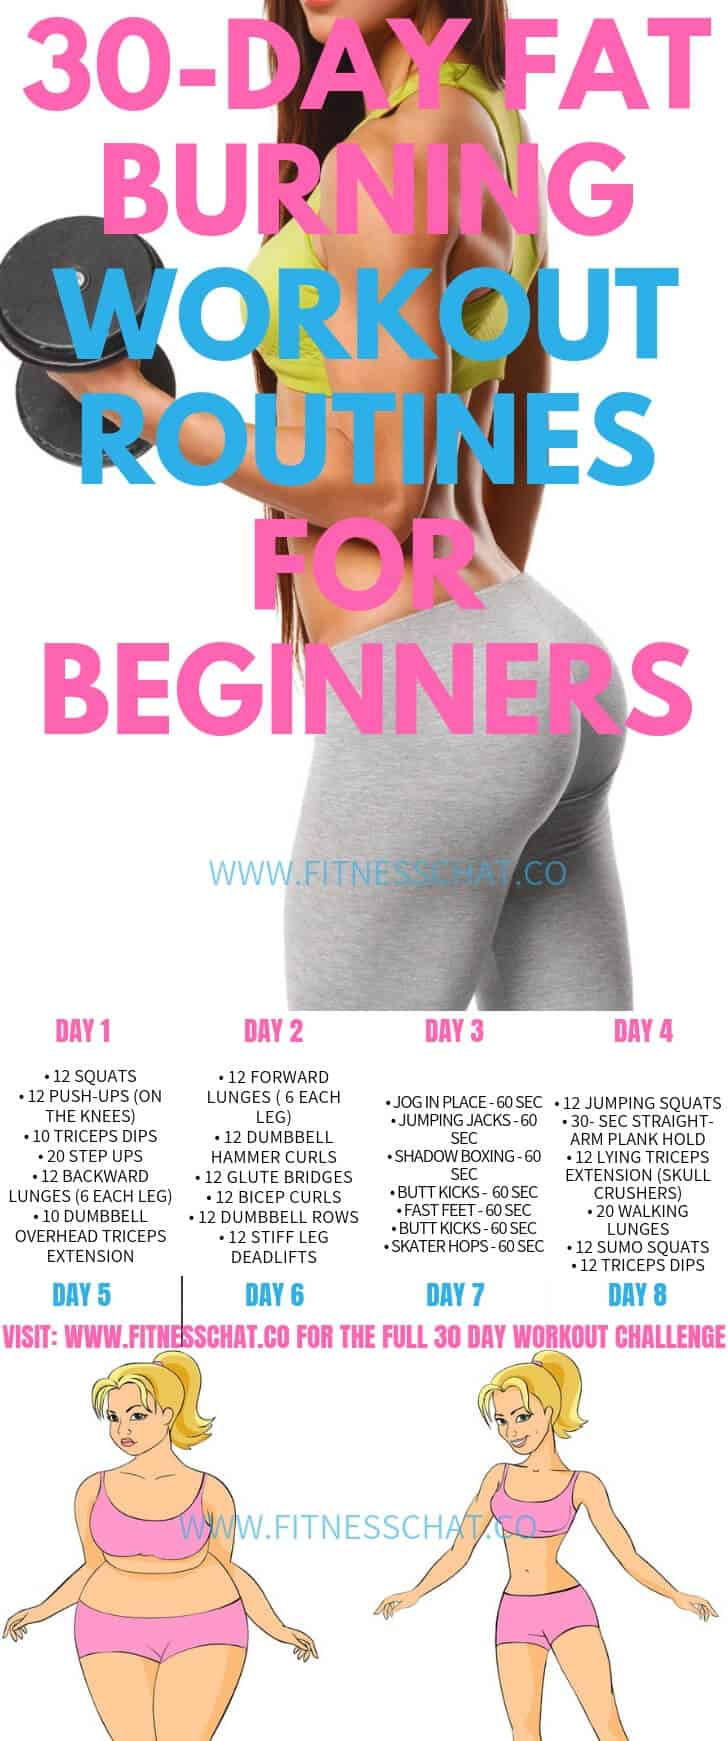 30-Day Fat shedding Workout Routines for Beginners